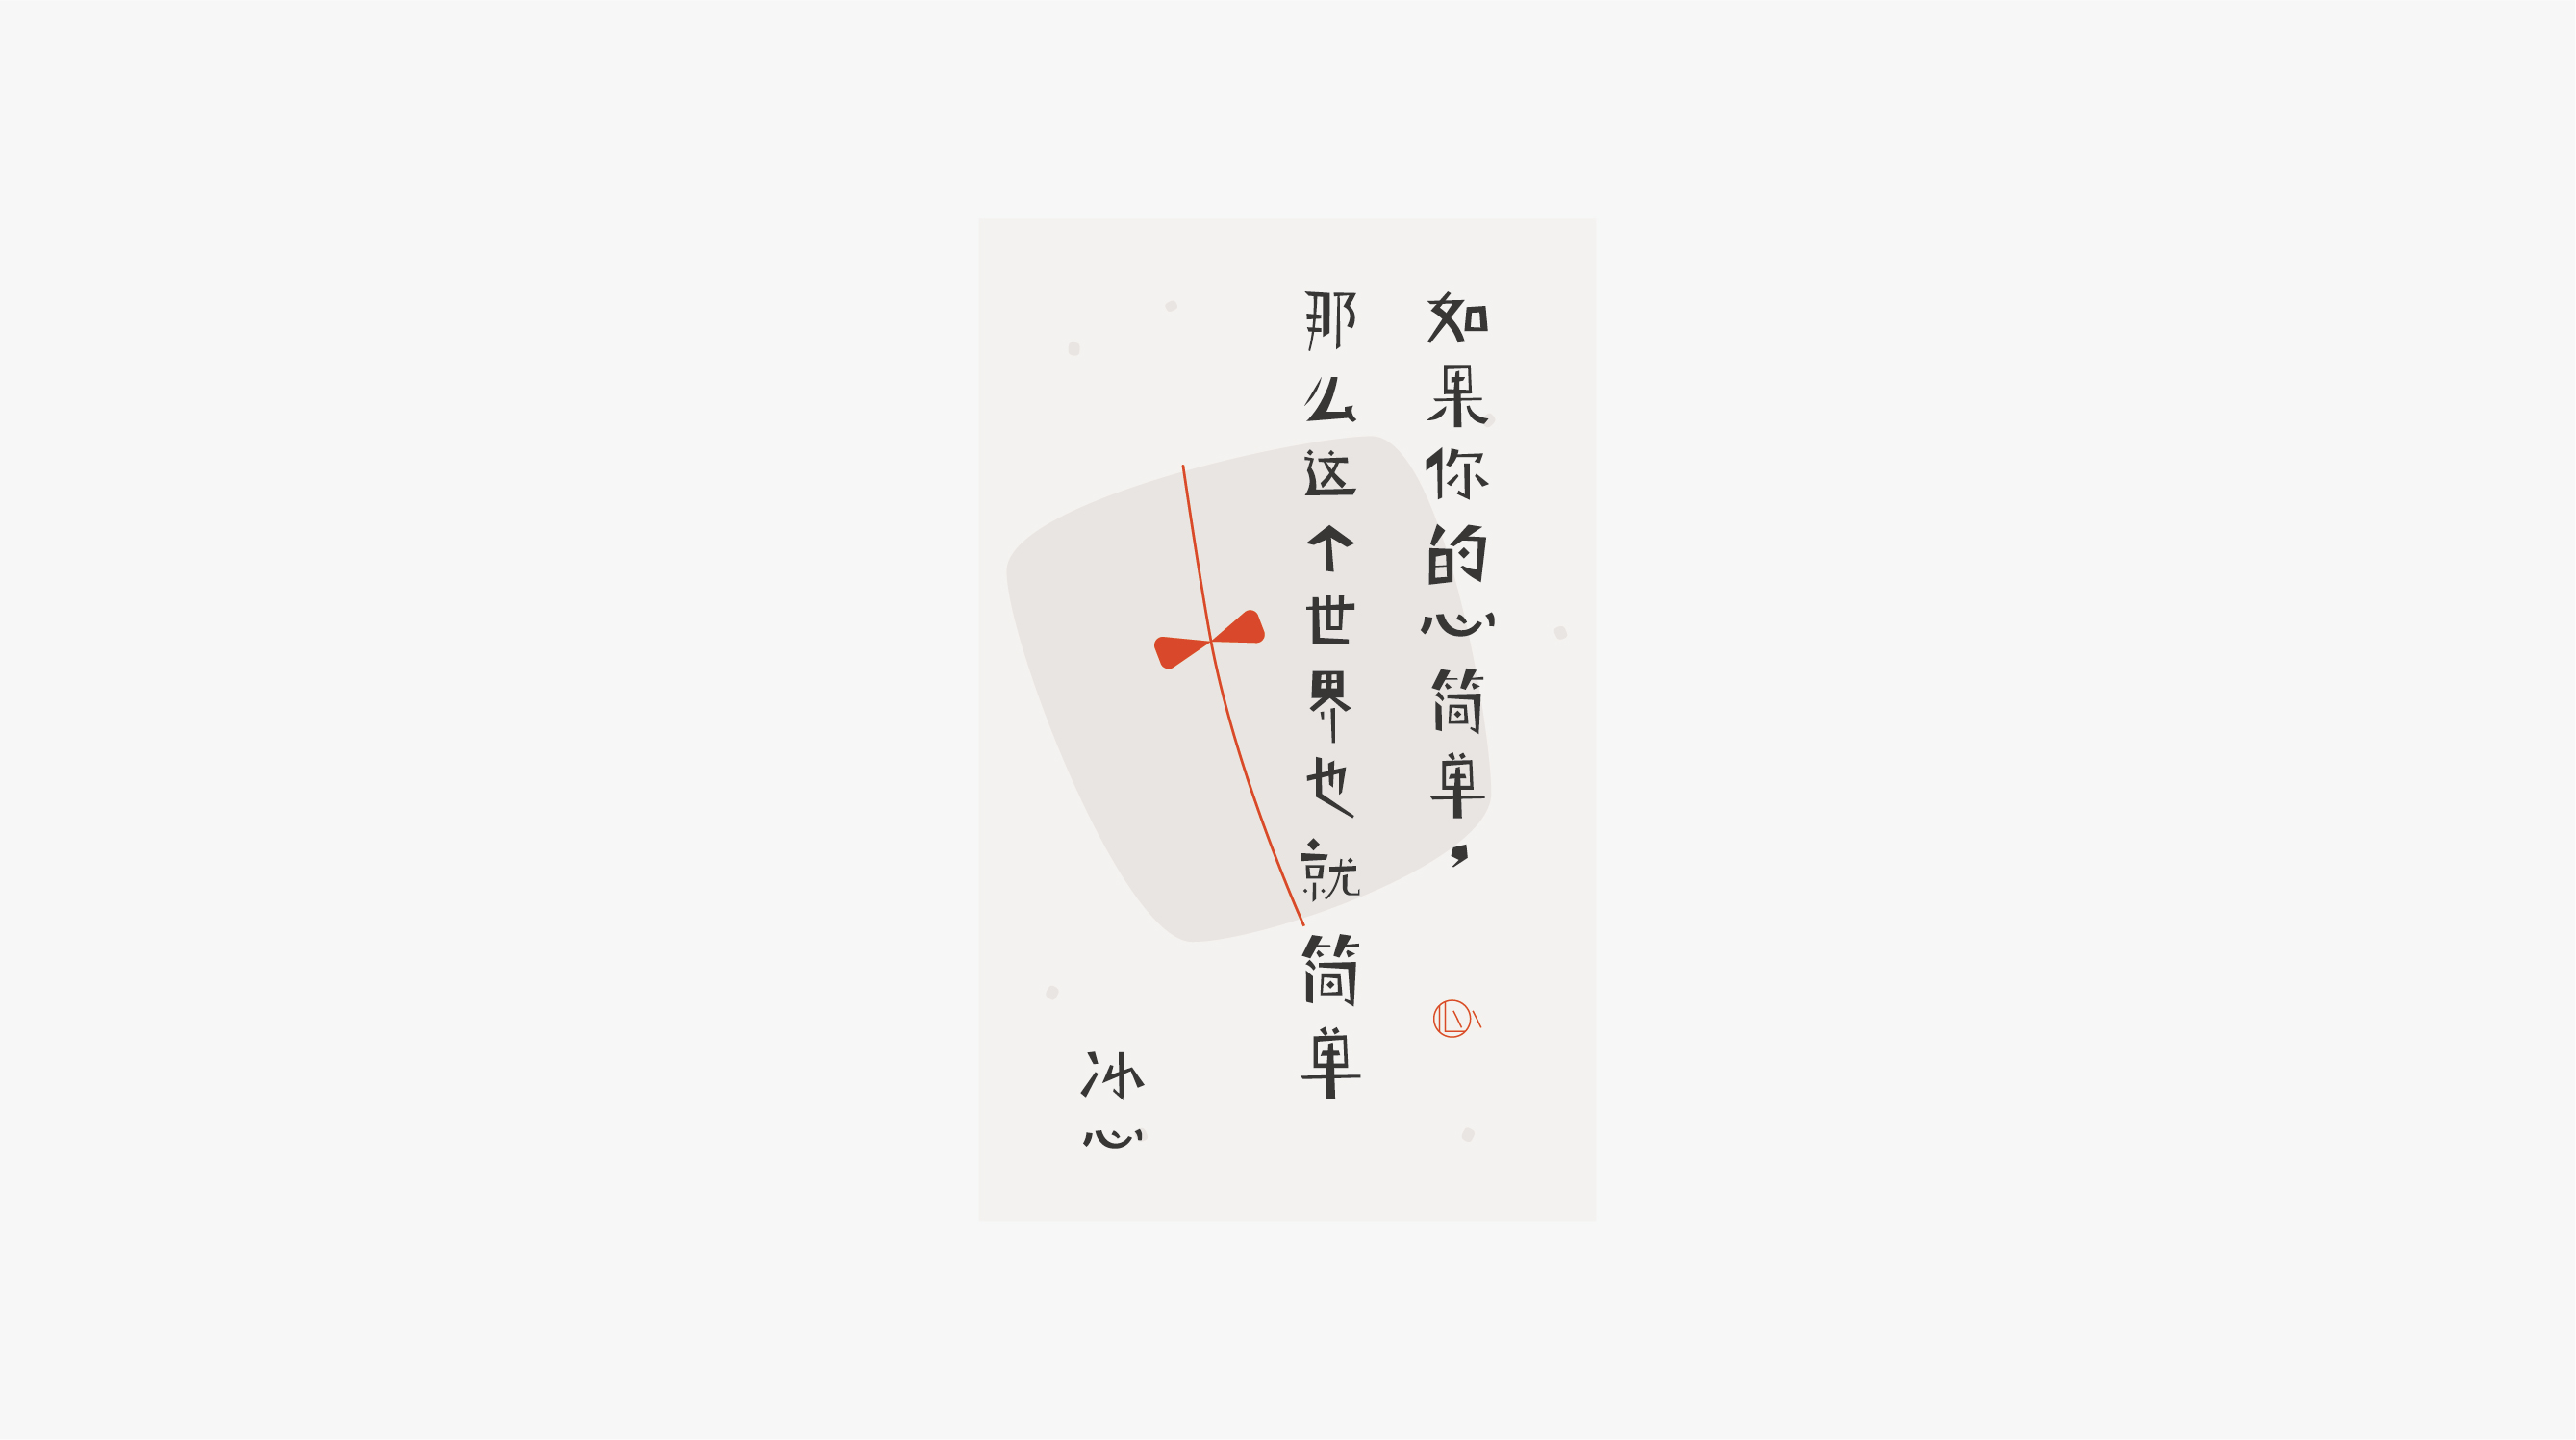 12P Collection of the latest Chinese font design schemes in 2021 #.606